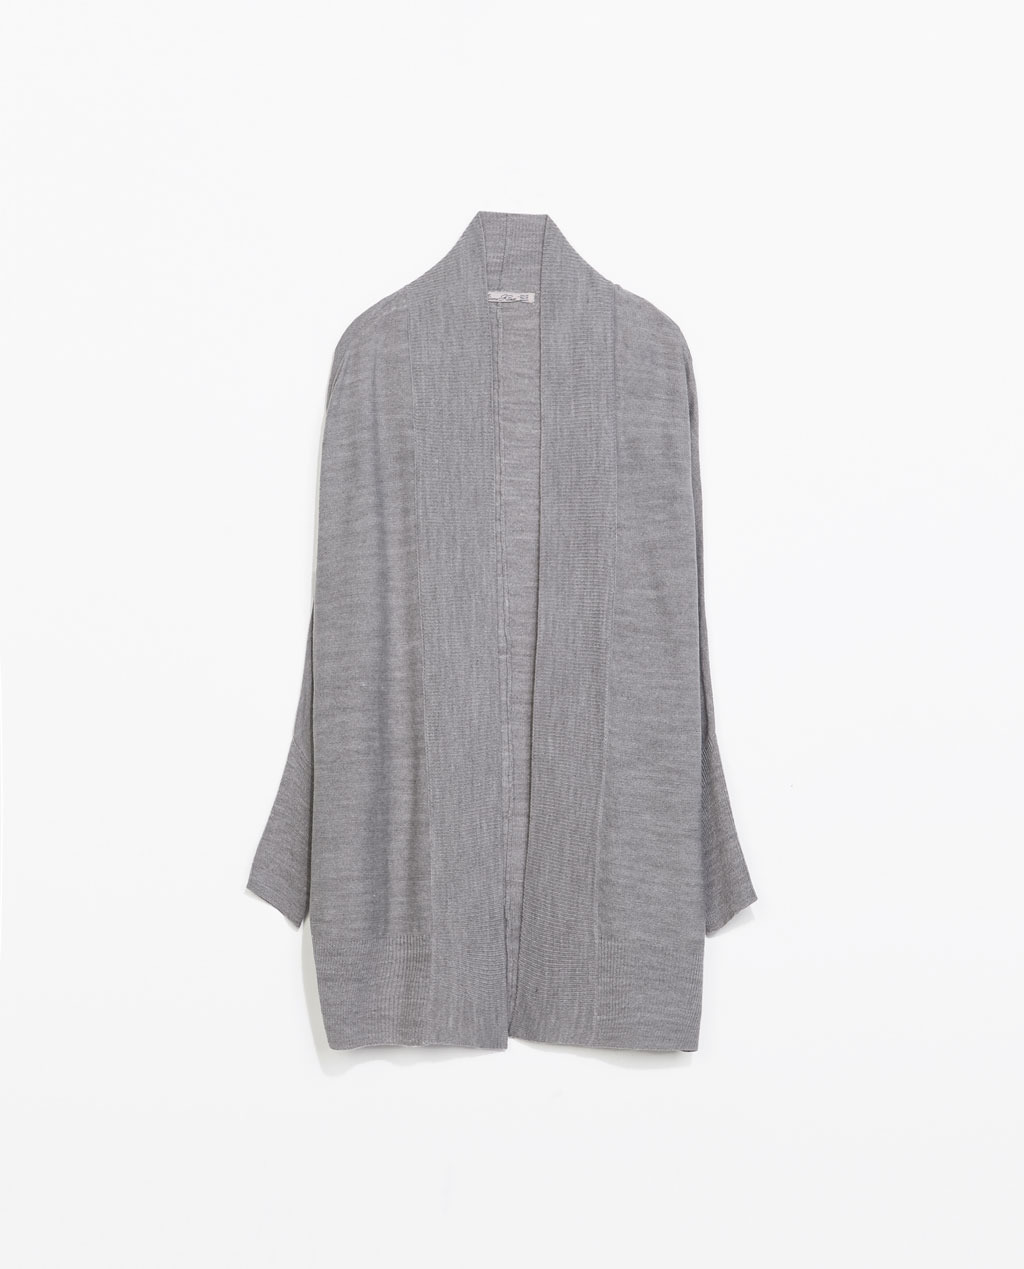 Wraparound Cardigan - sleeve style: dolman/batwing; pattern: plain; neckline: collarless open; style: open front; predominant colour: mid grey; occasions: casual, creative work; fibres: acrylic - 100%; fit: loose; length: mid thigh; sleeve length: long sleeve; texture group: knits/crochet; pattern type: knitted - fine stitch; season: s/s 2014